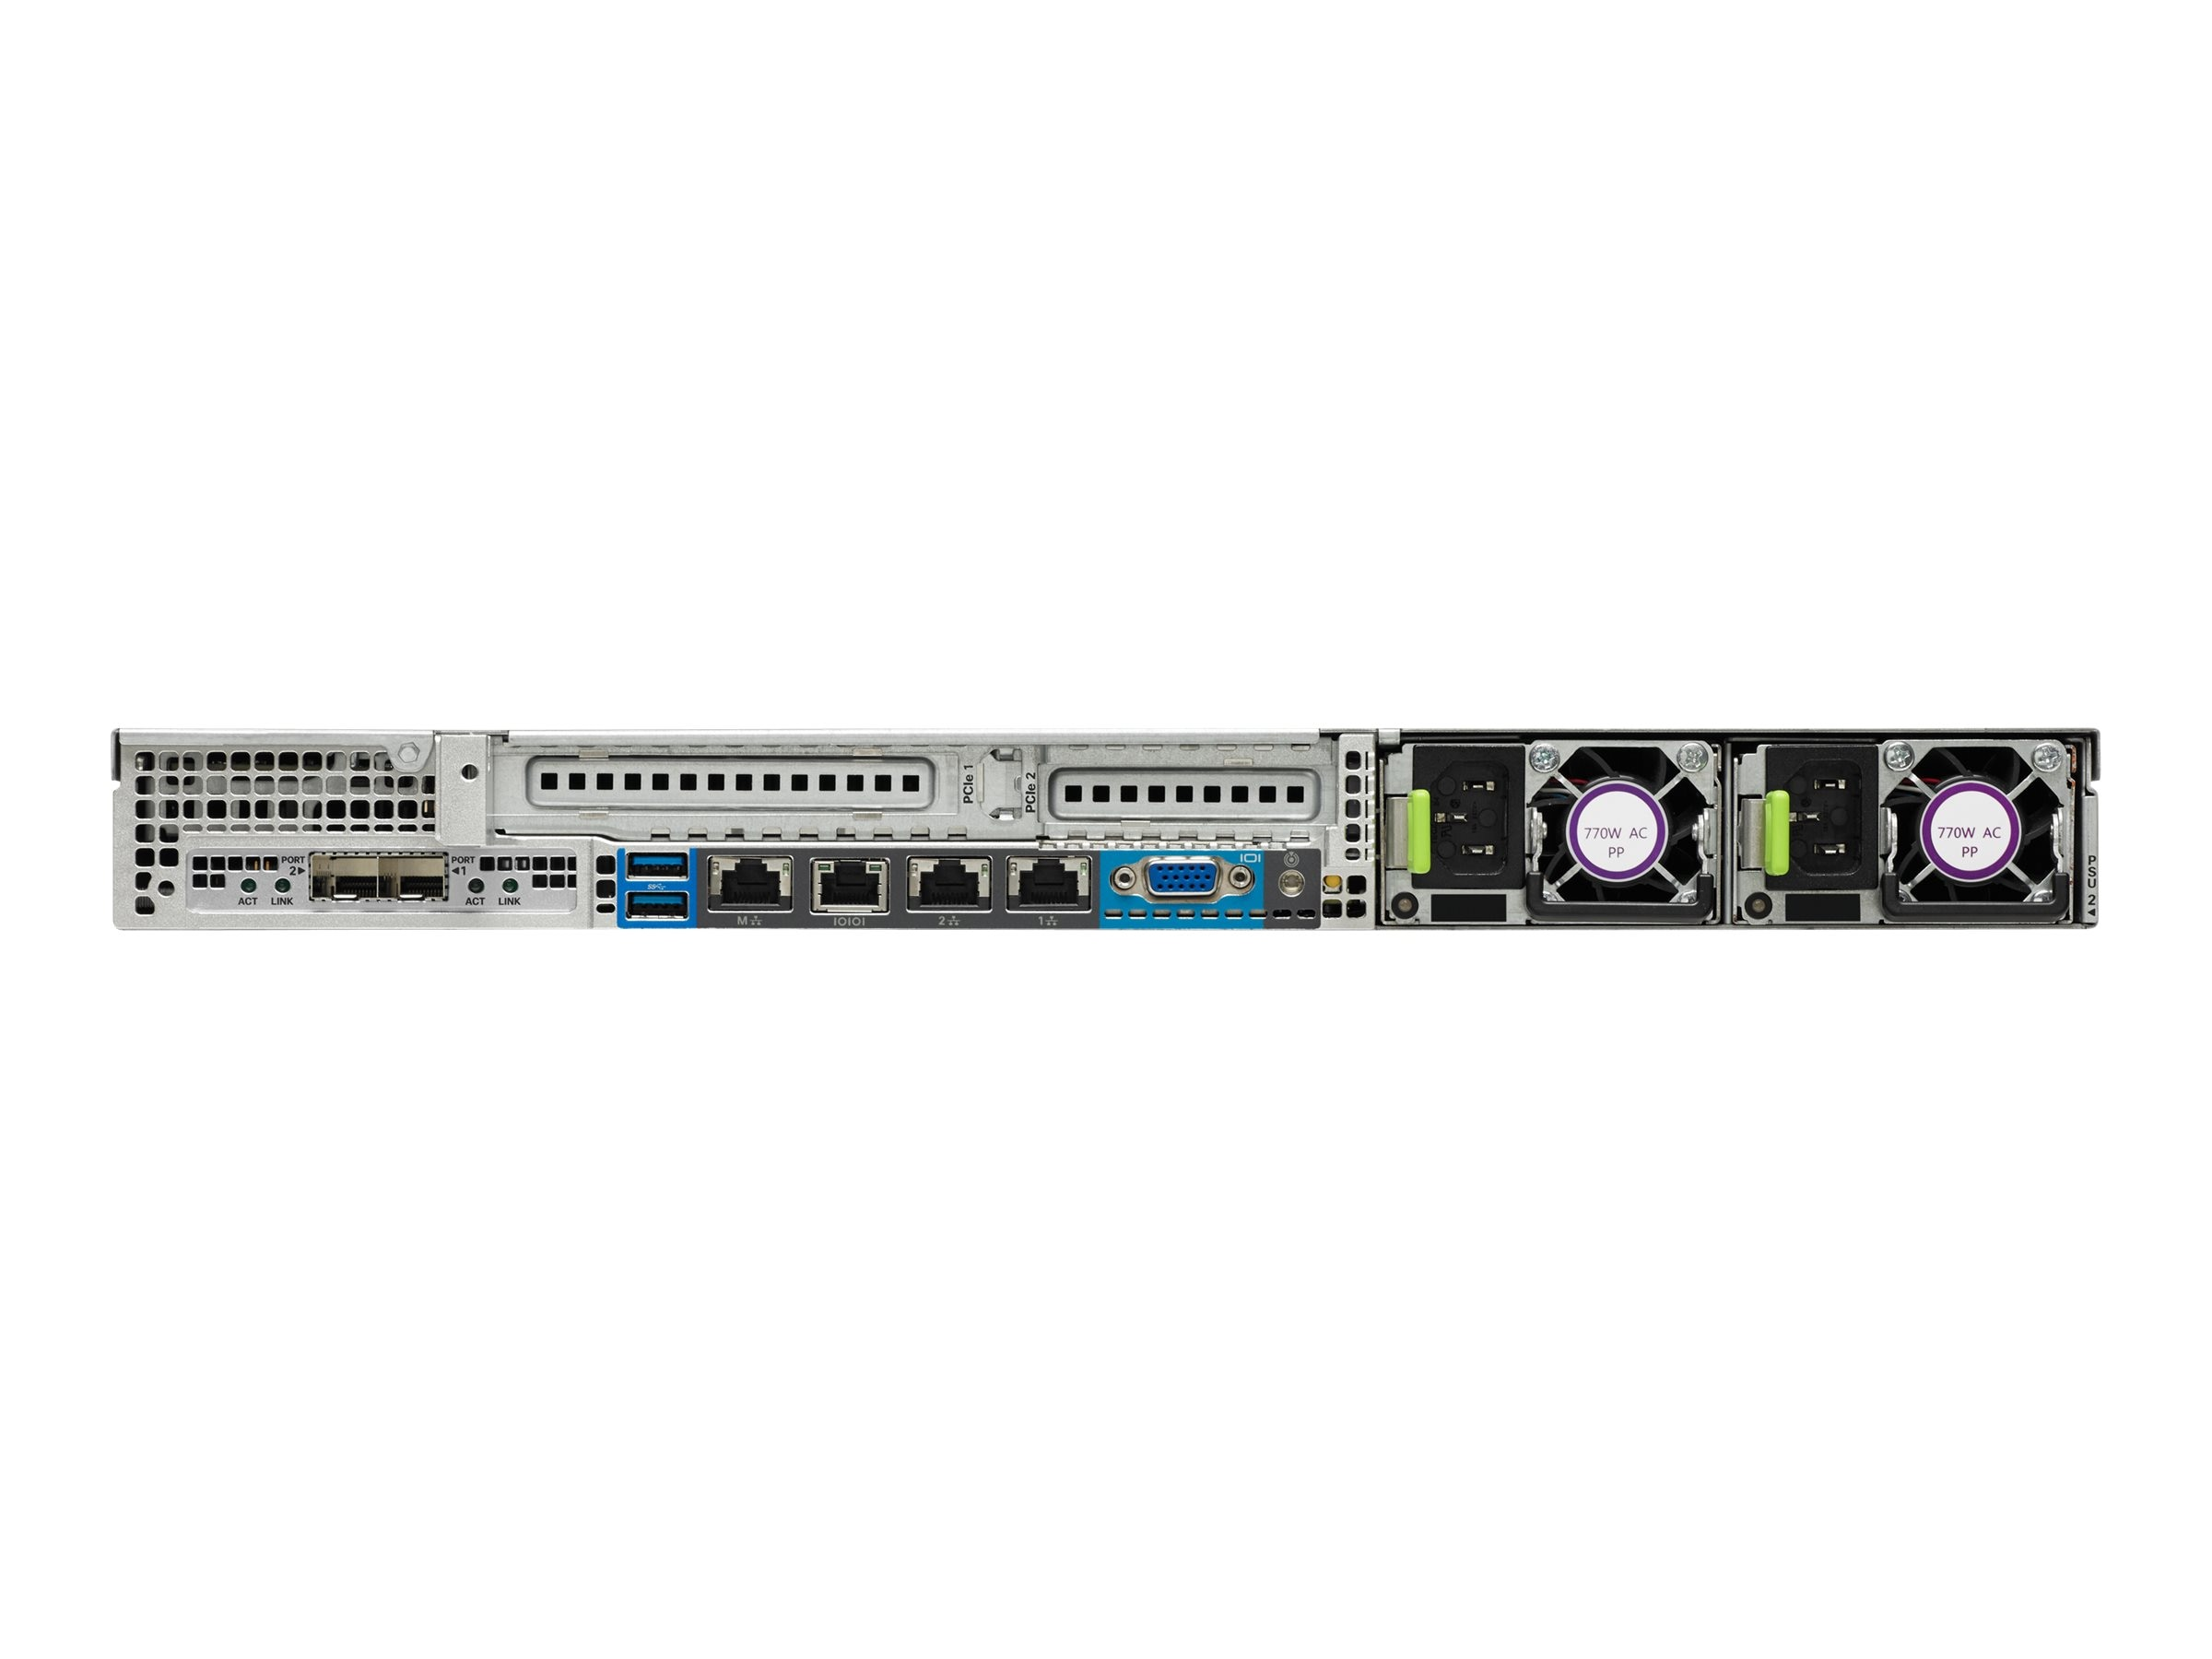 Cisco UCS-SP-C220M4-A1 Image 5